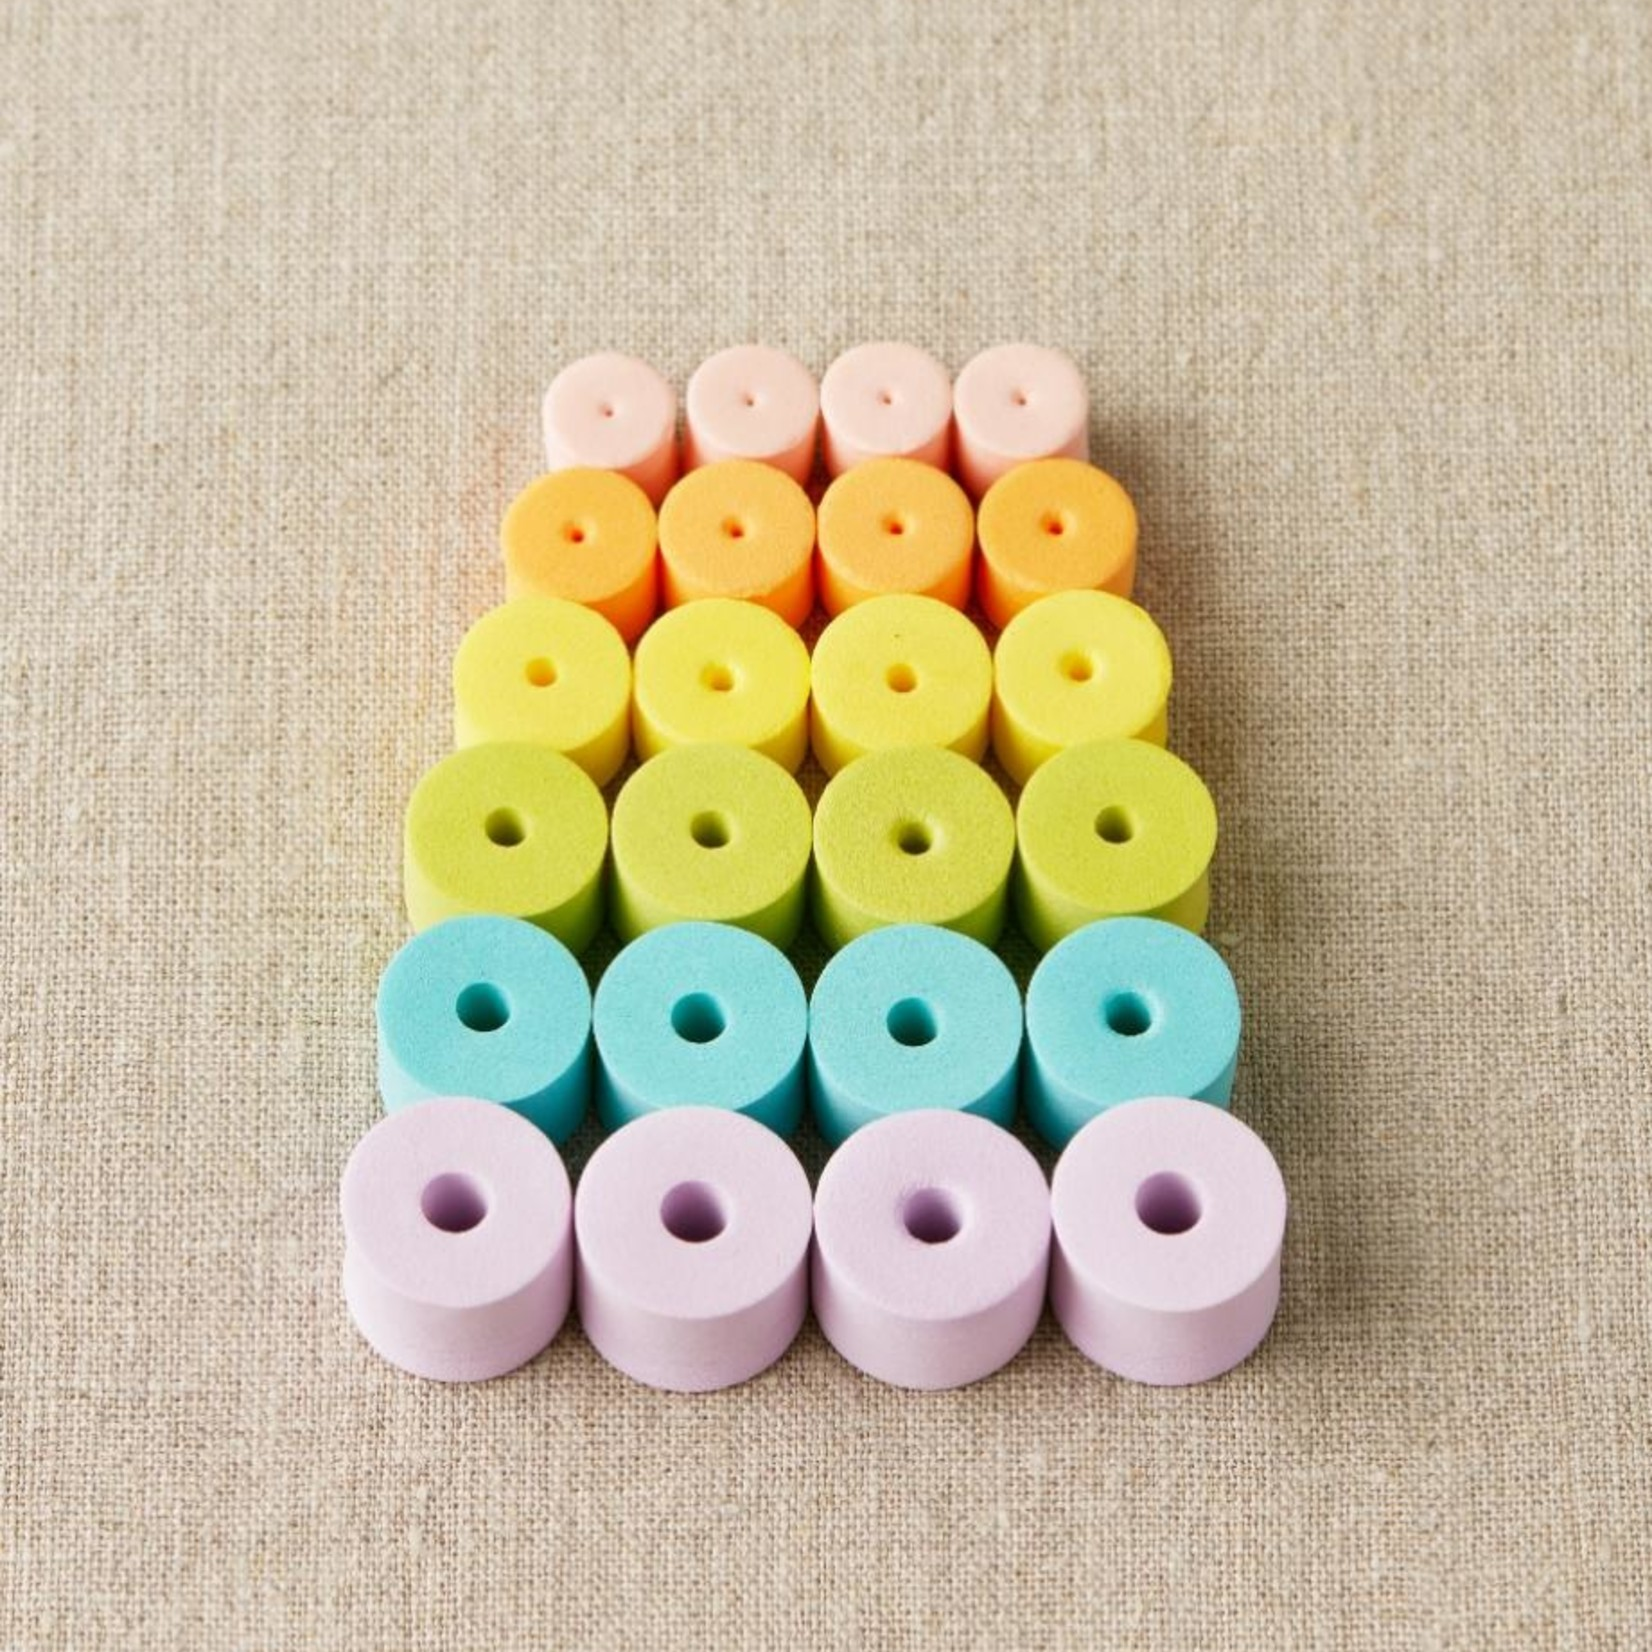 Cocoknits Cocoknits - Colorful Stitch Stoppers